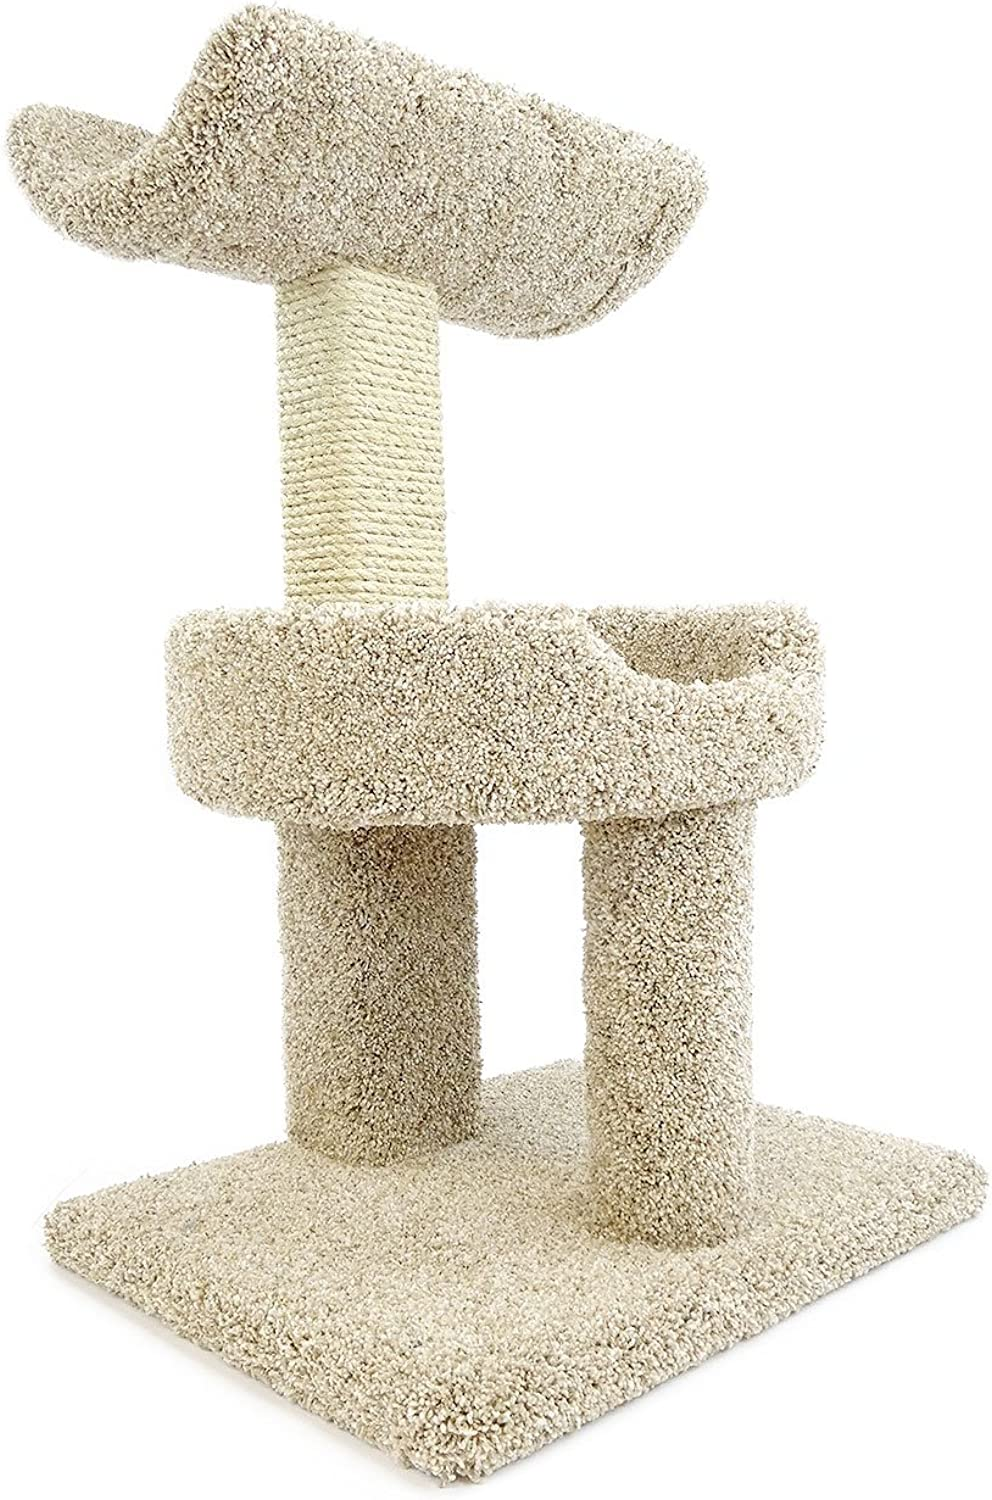 New Cat Condos Premier Window Perch, Beige